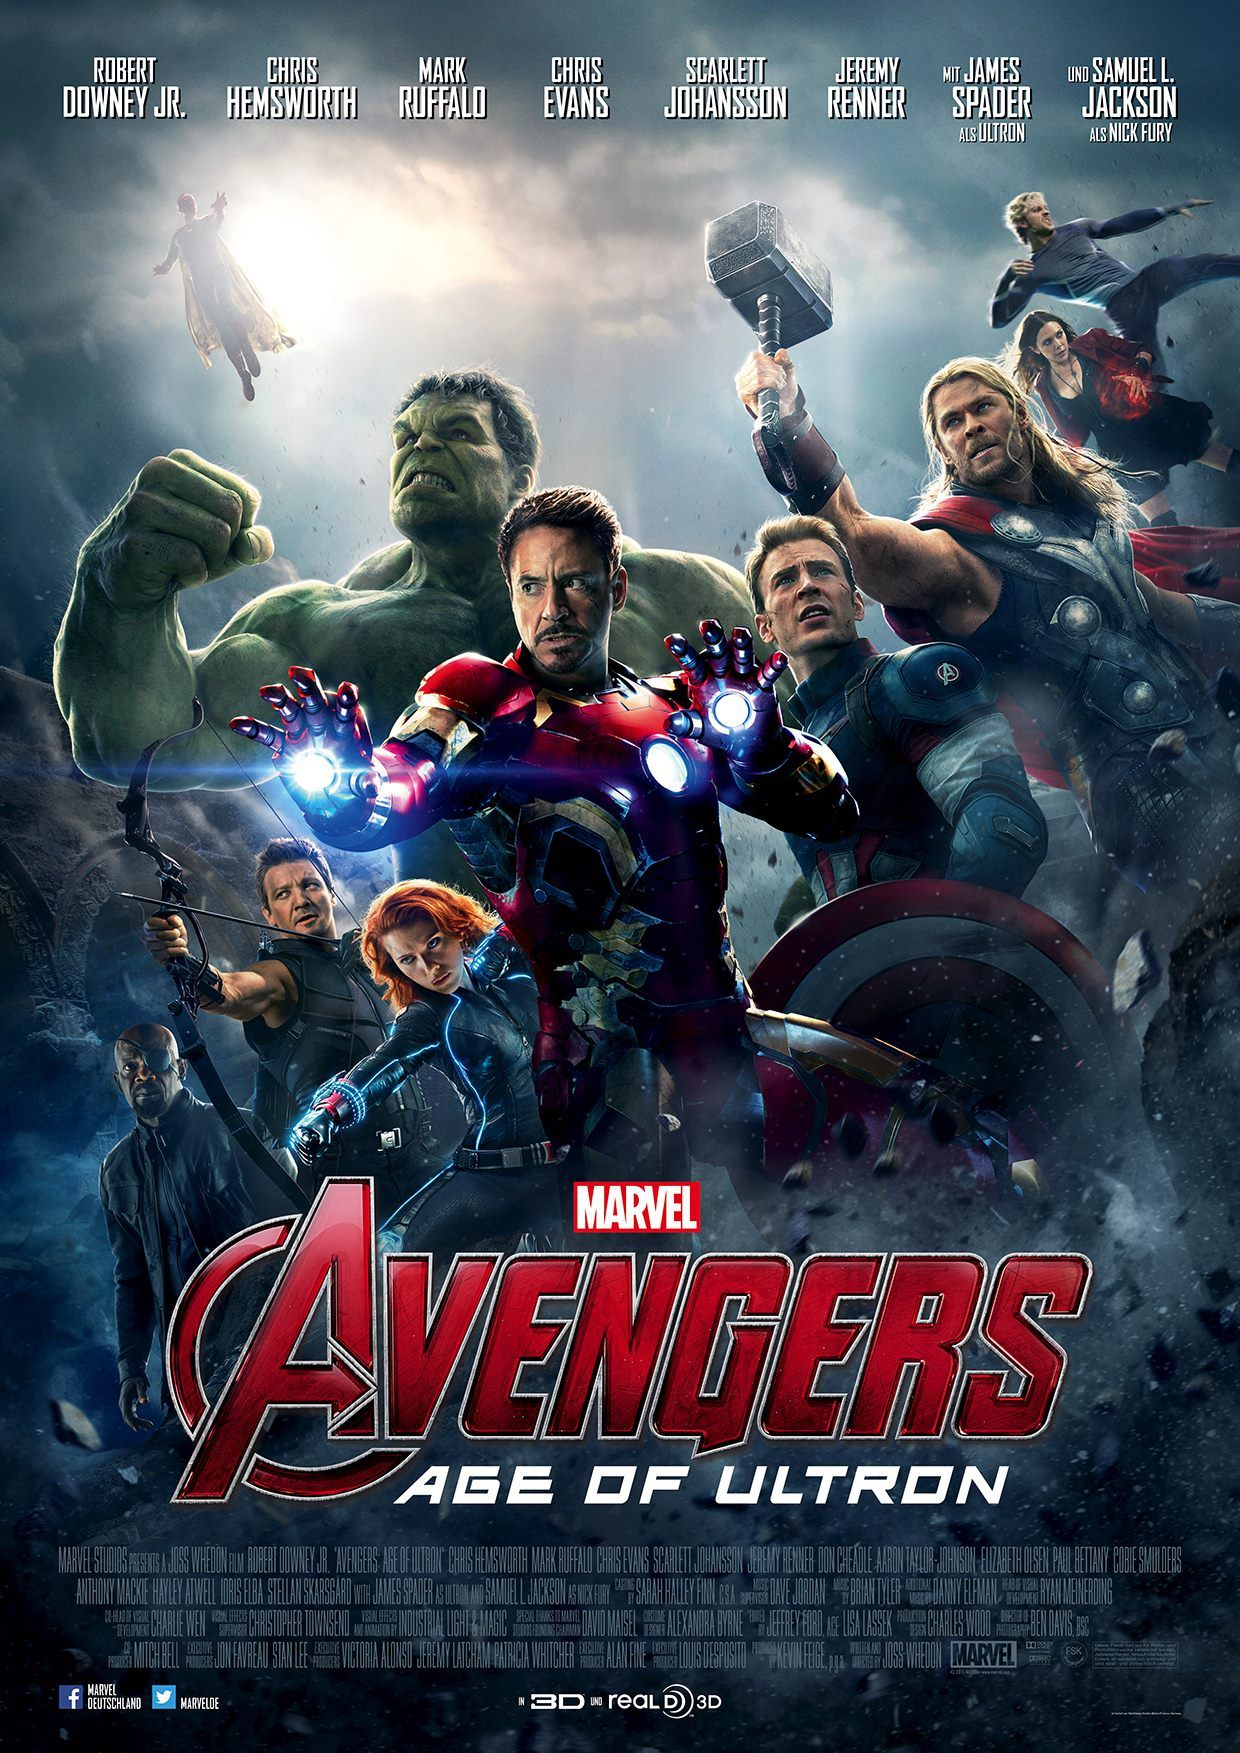 Download Film Avengers Age Of Ultron Bluray : download, avengers, ultron, bluray, Avengers, Ultron, Fasrsense